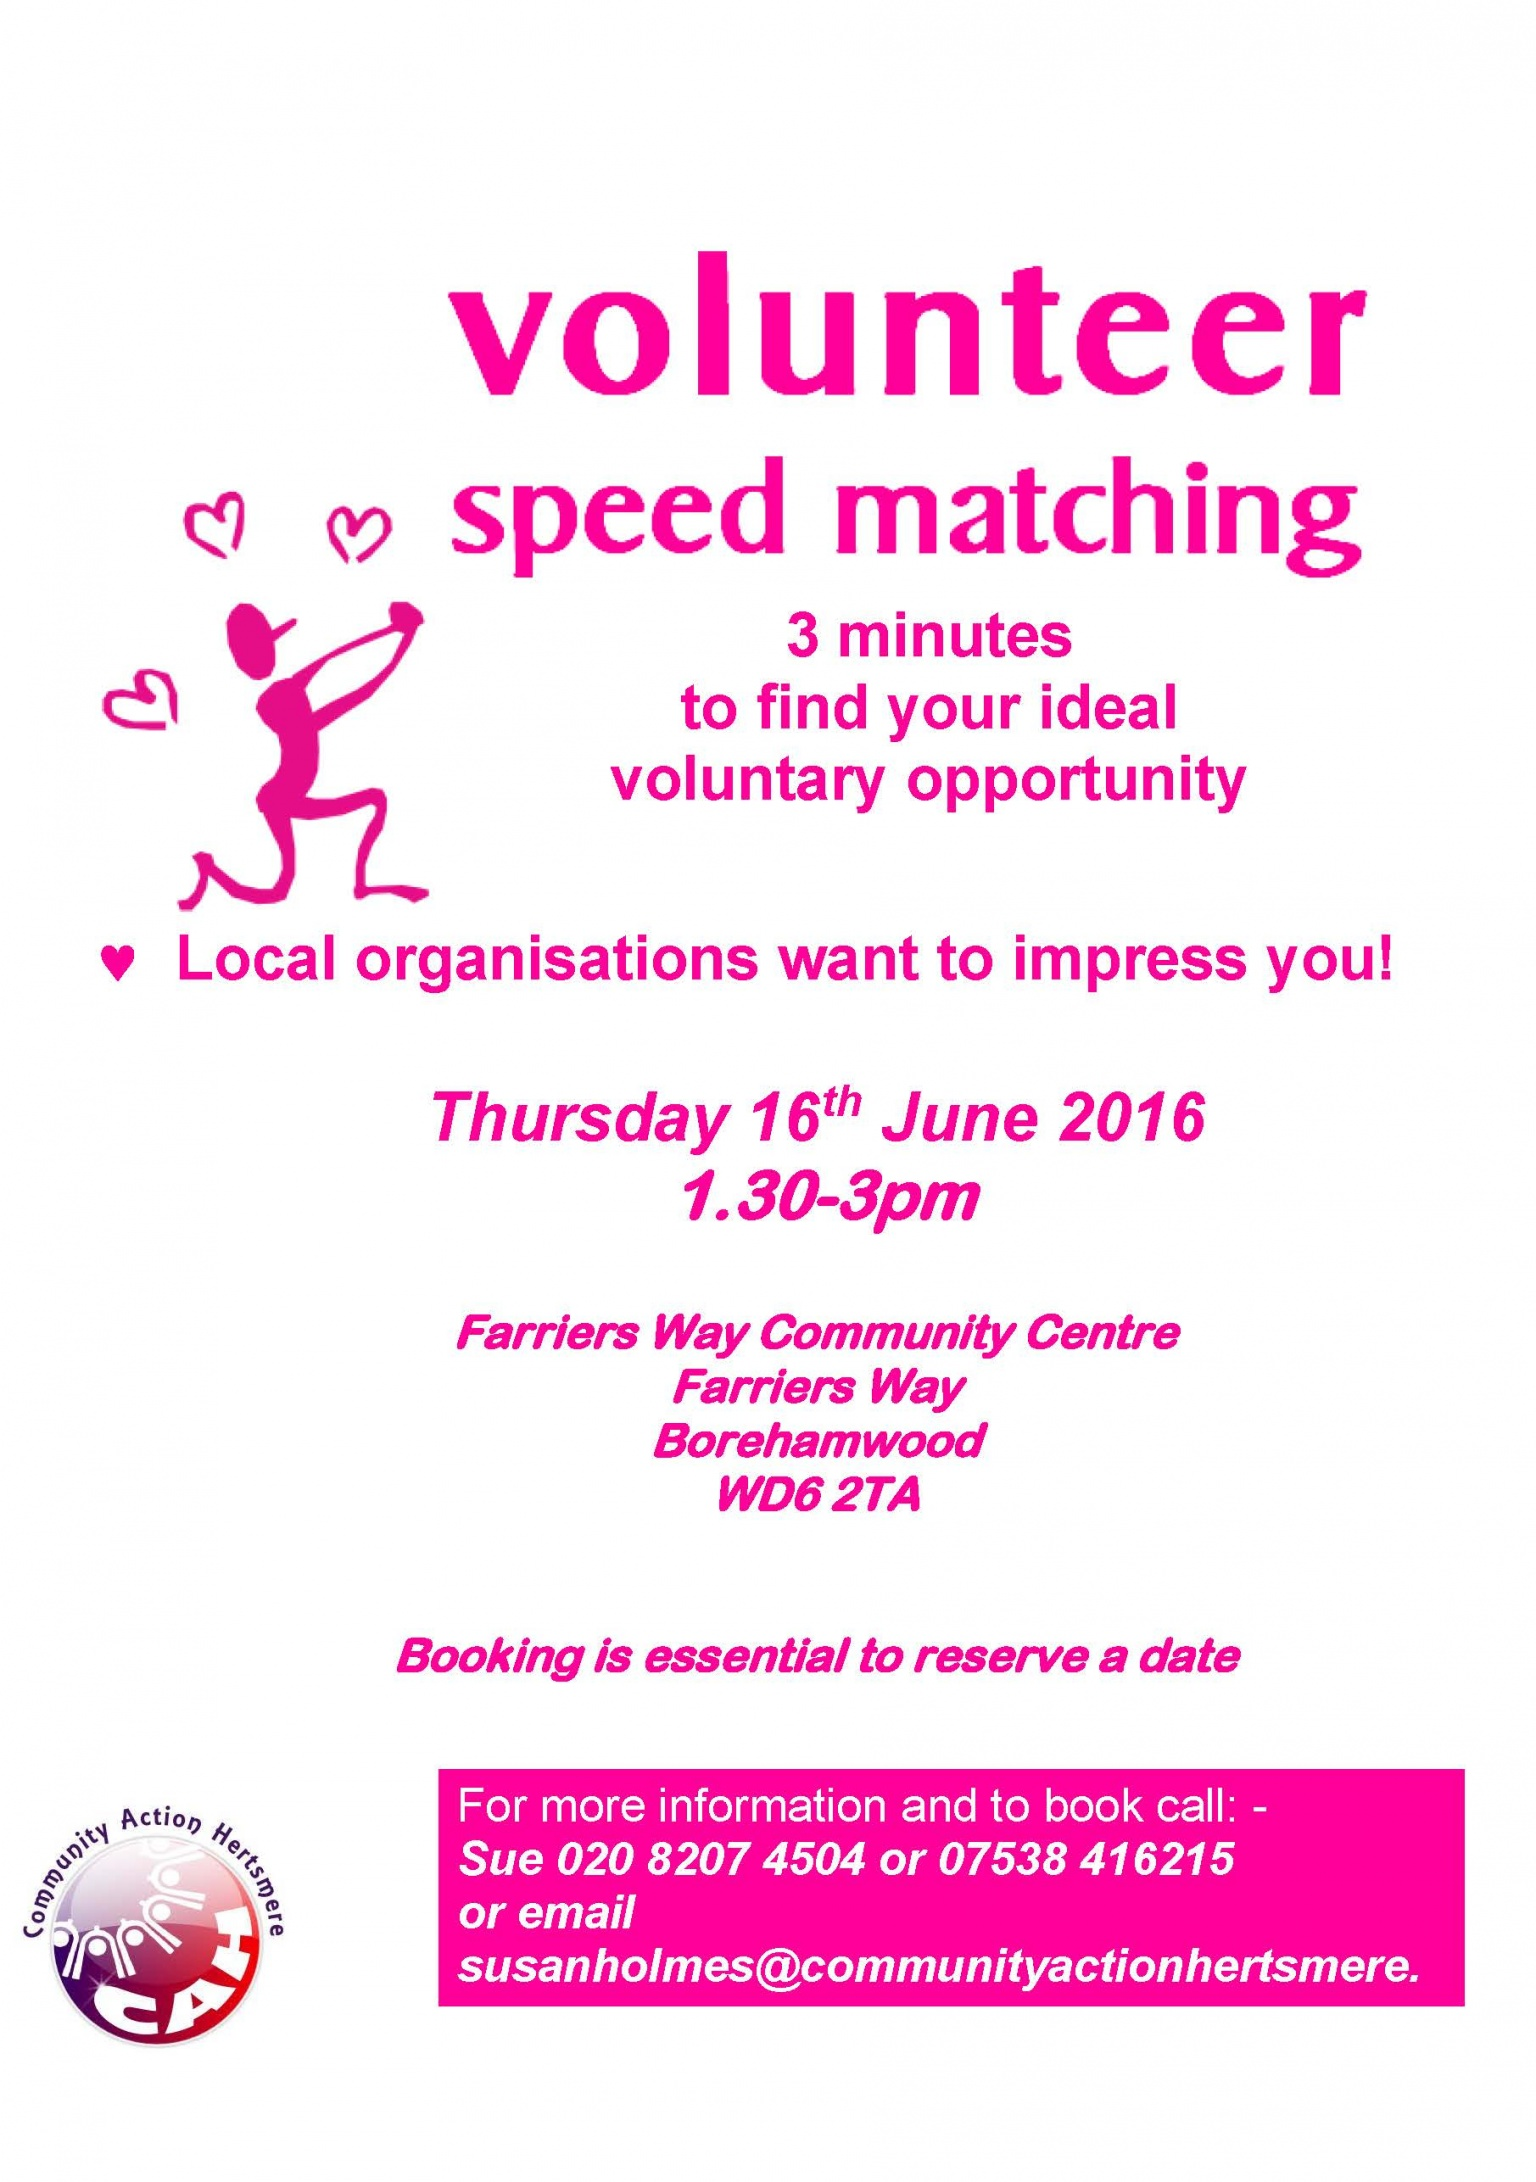 Speed dating events herts